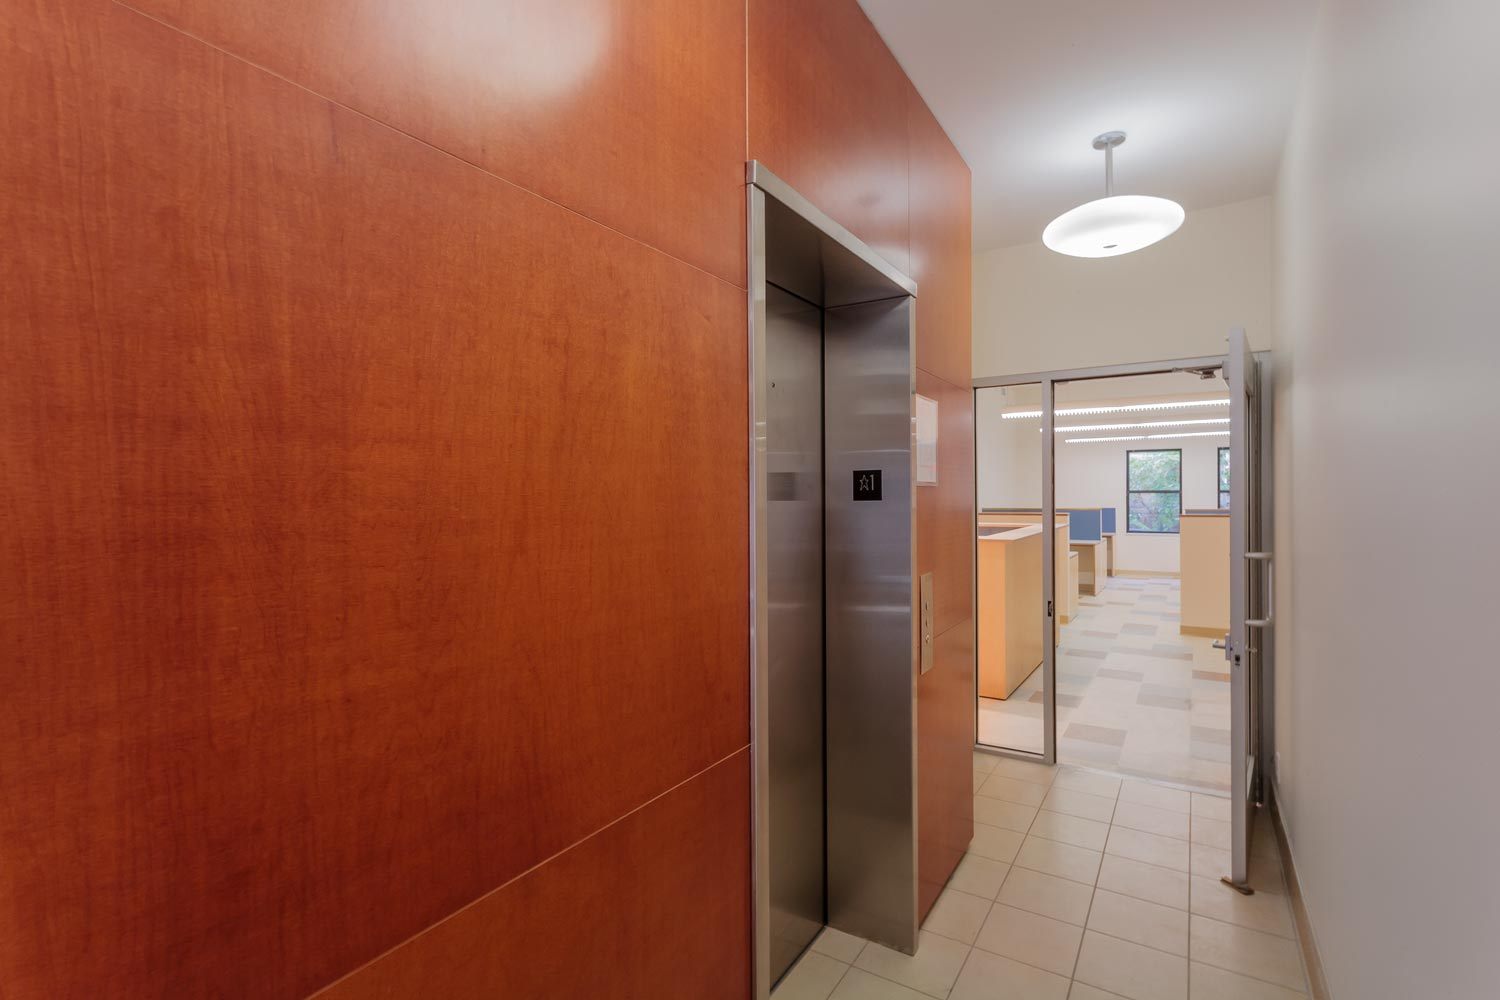 Elevator lobby at the administrative offices of the non-profit BronxWorks, by OCV Architects.